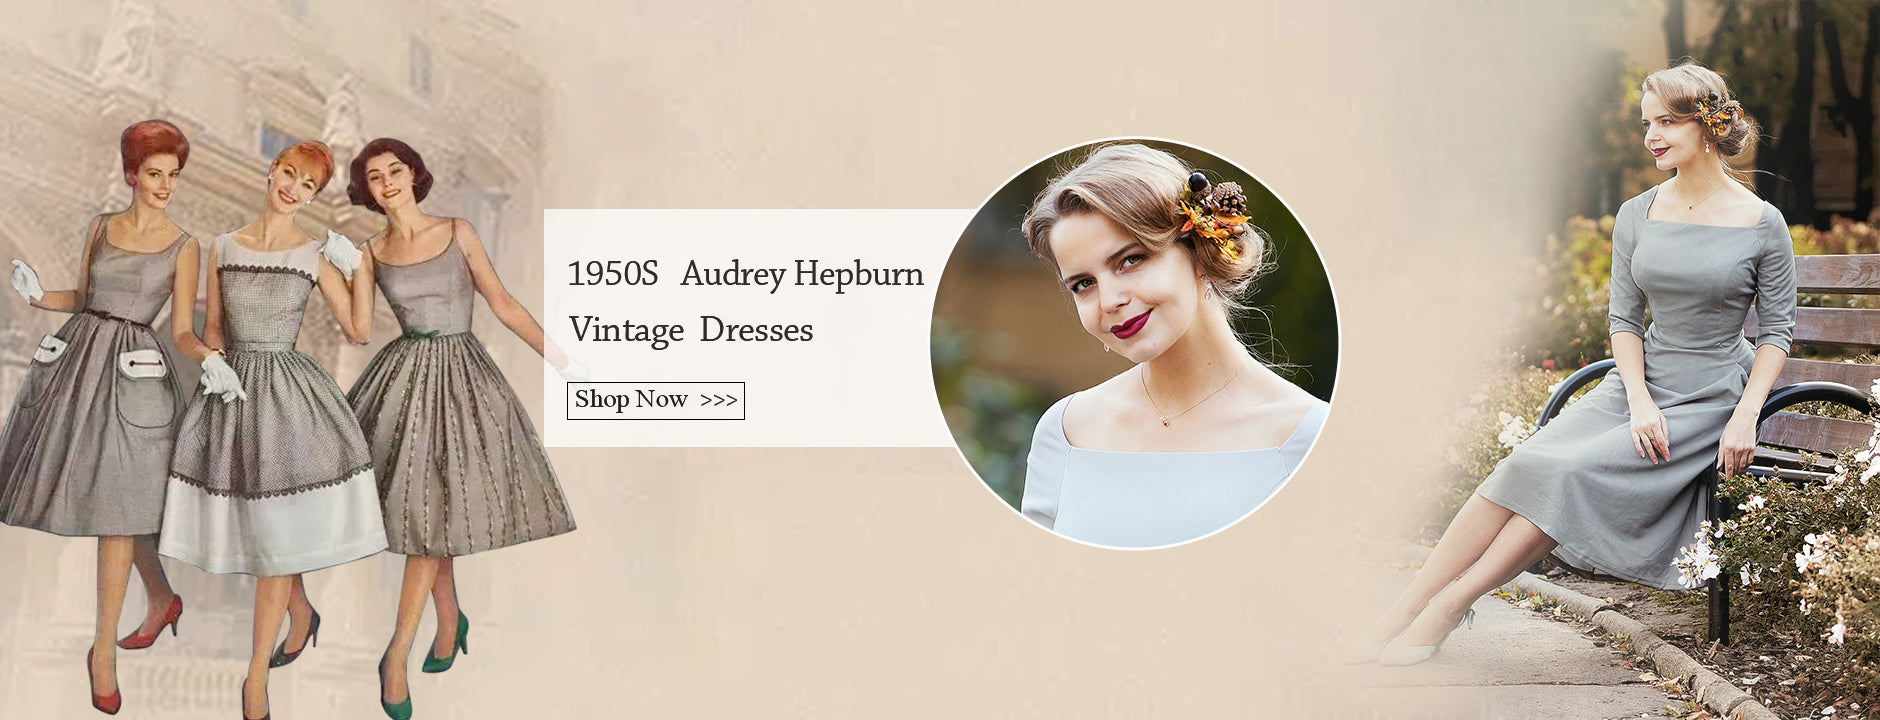 vintage dresses 1950s vintag style 50s fashion for women Audrey Hepburn Style | Gardenwed